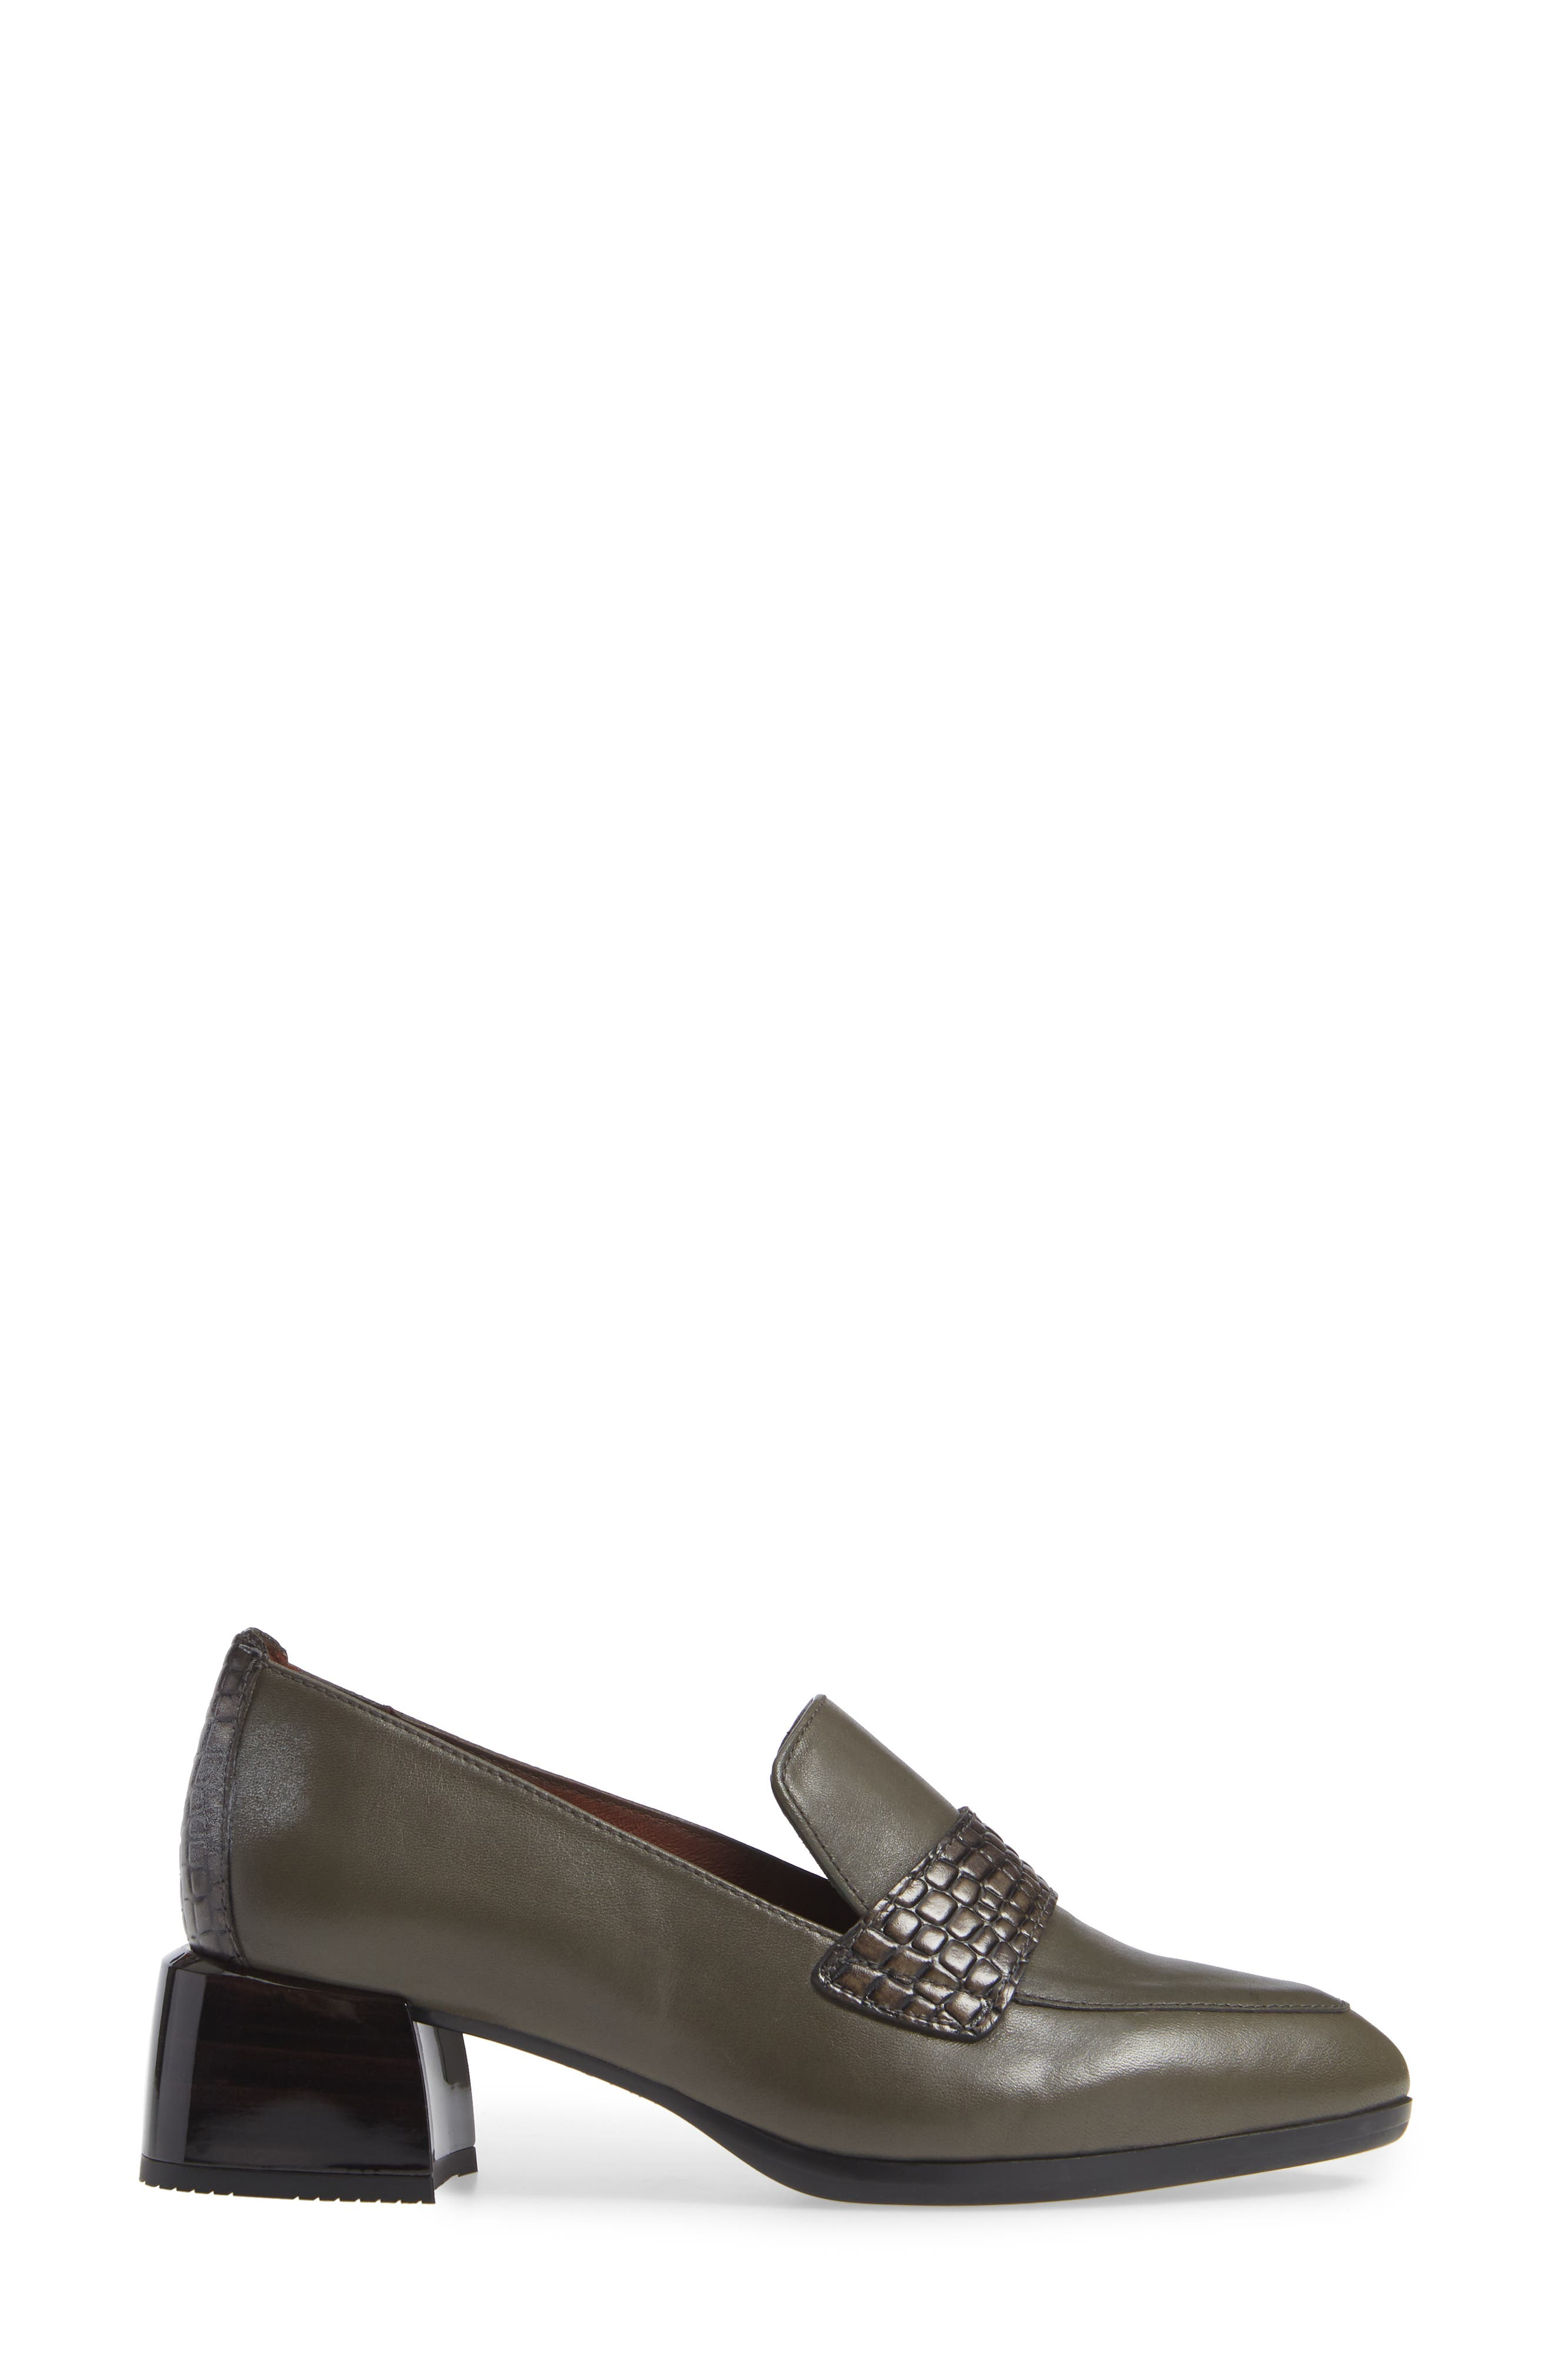 HISPANITAS, Gabrianna Block Heel Loafer, Alternate thumbnail 3, color, SOHO ARMY/ CAIMAN ARMY LEATHER